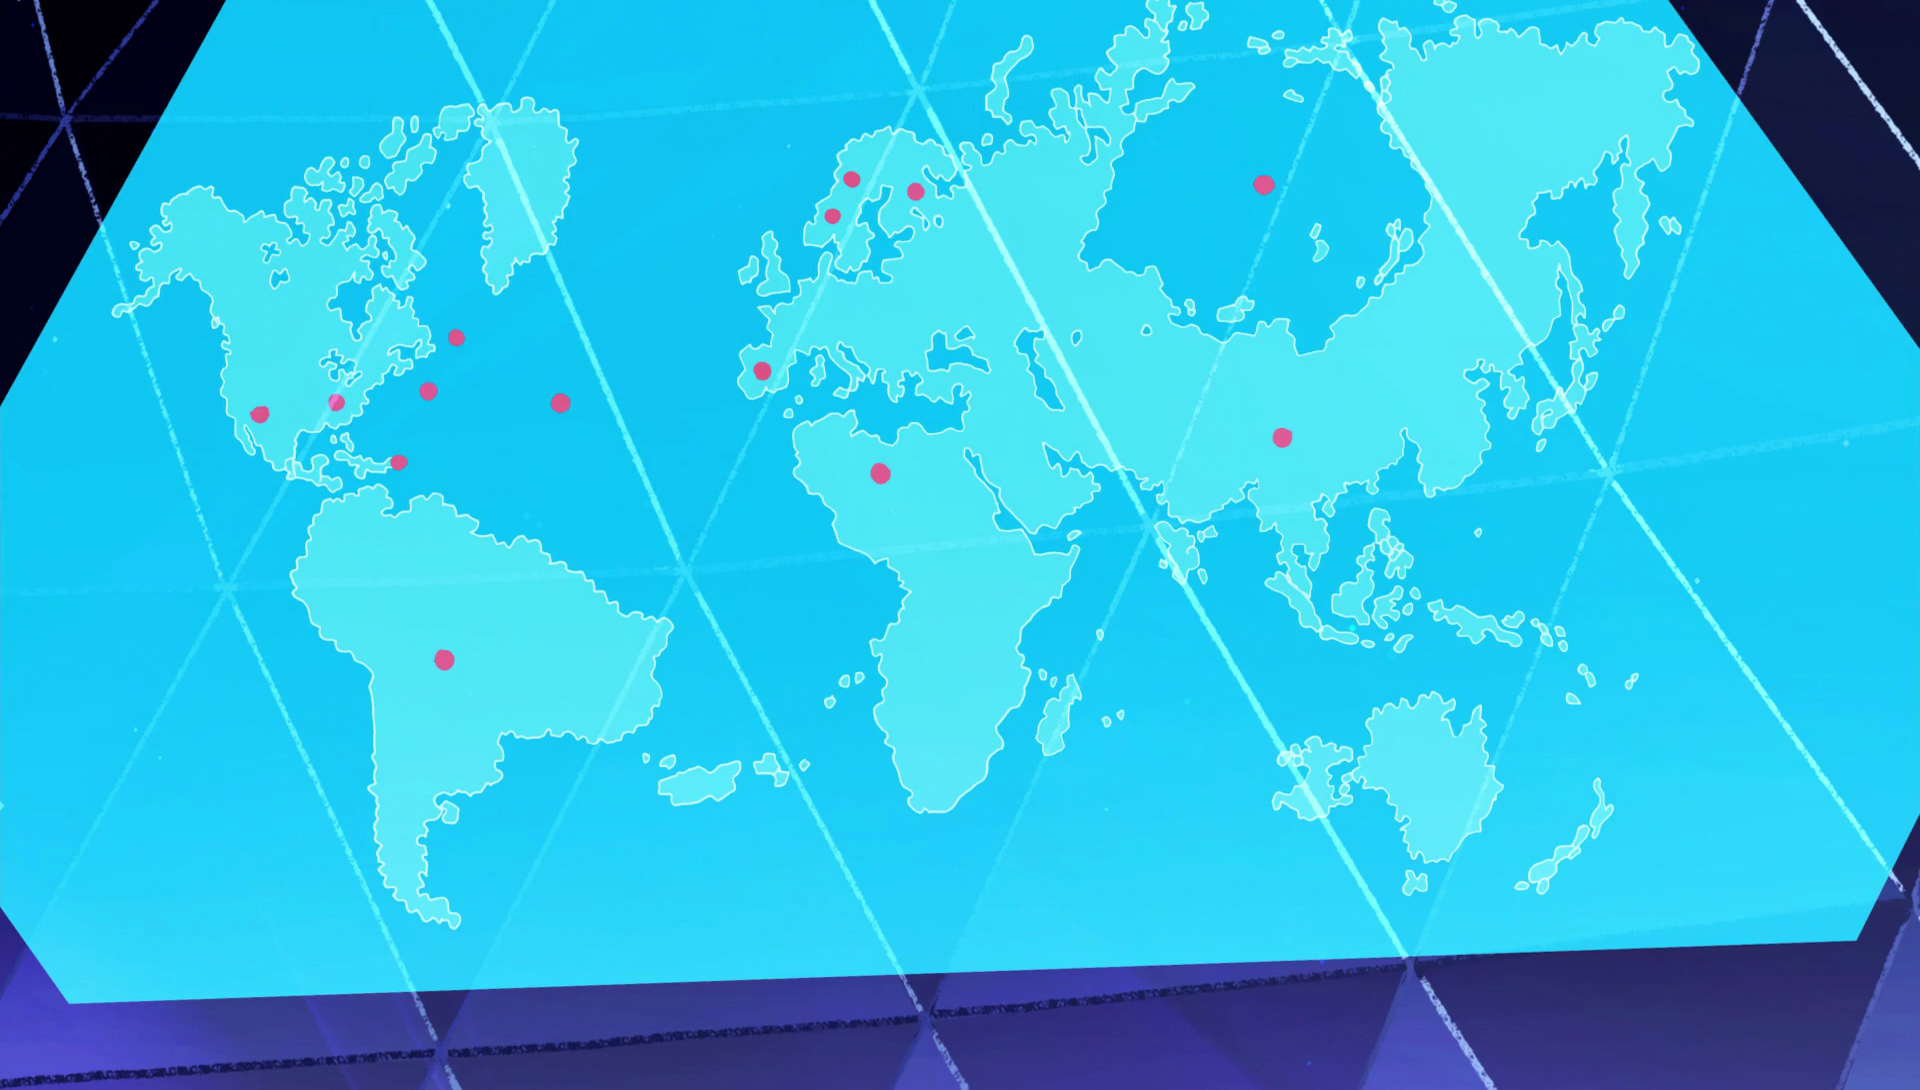 Weve got a labeled world map from the art book stevenuniverse in the show gumiabroncs Images